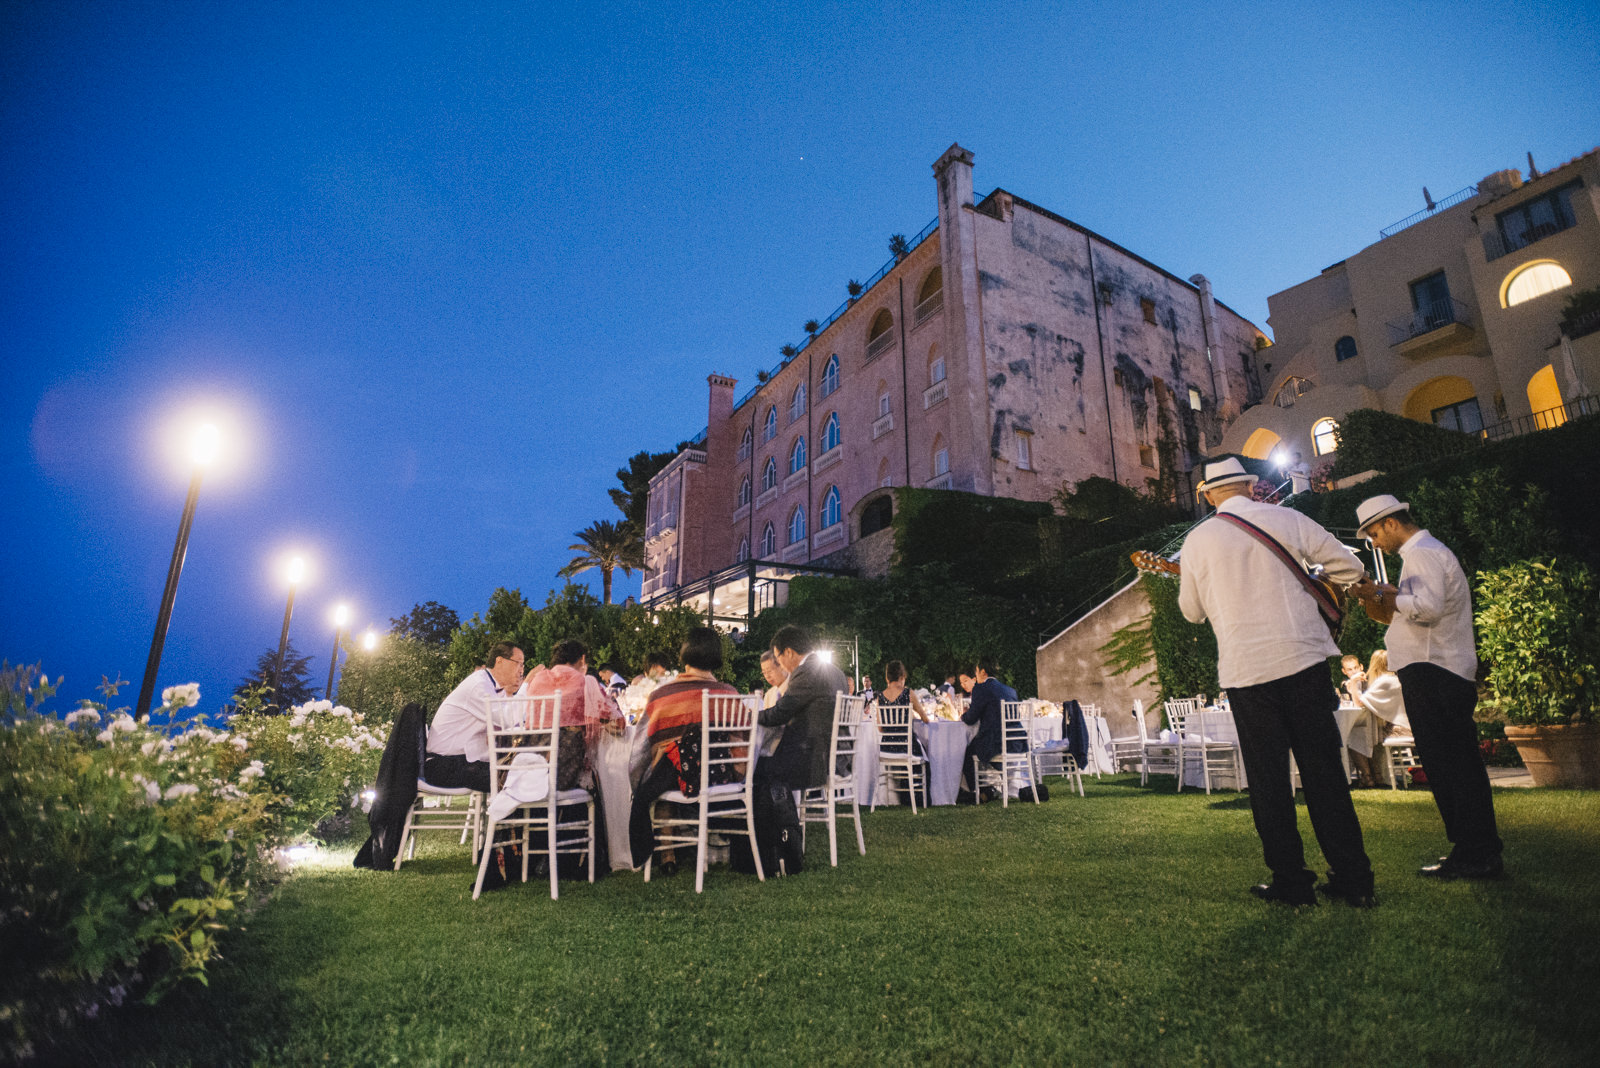 musicians and guests during the dinner party at belmont hotel caruso by night